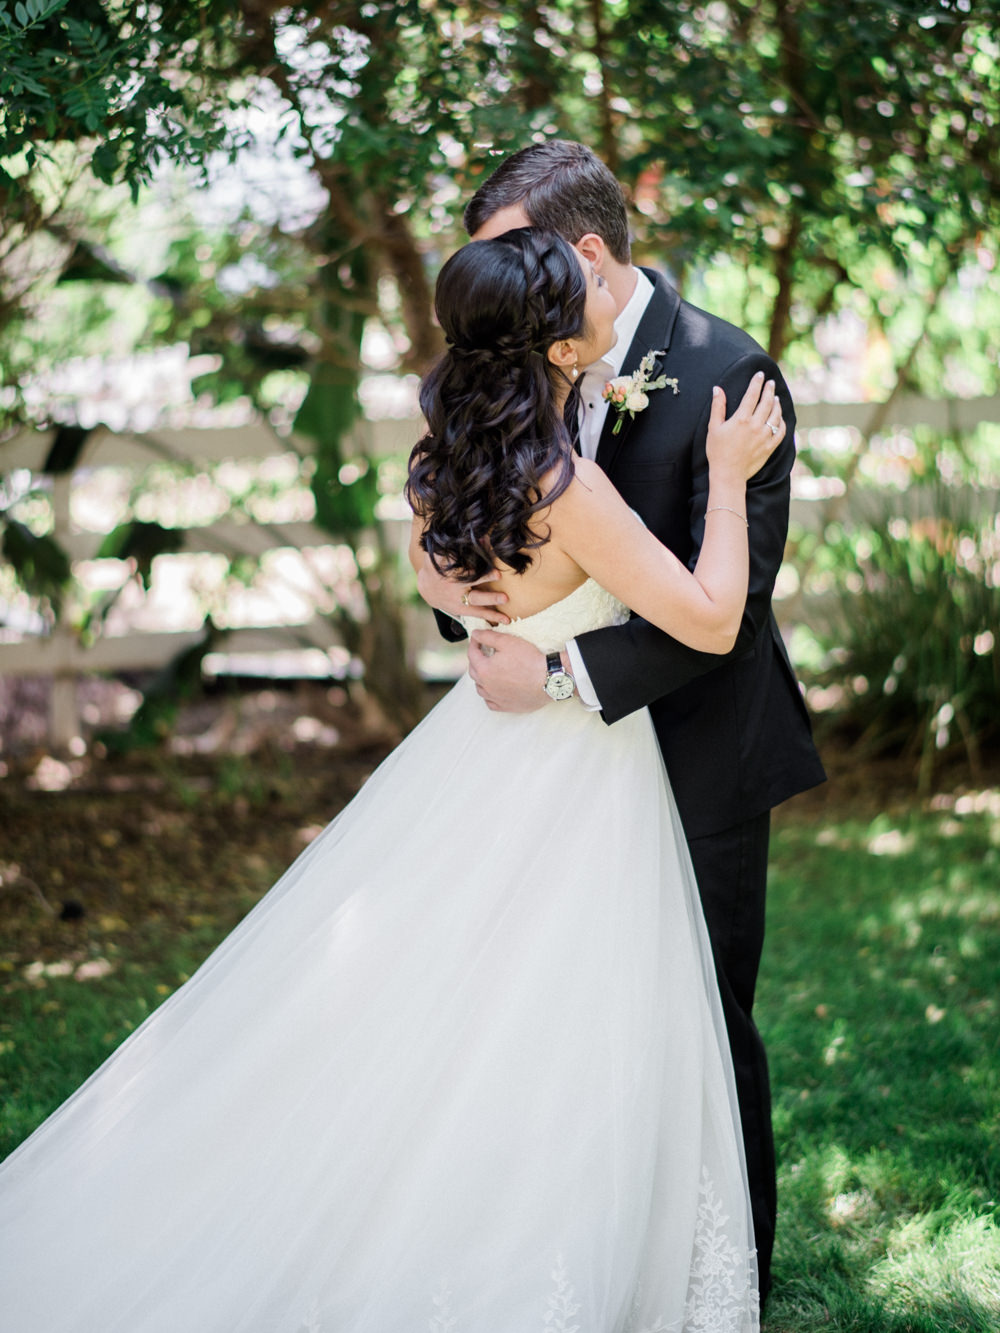 RomanticGardenWedding_WhiskersandWillow_036.jpg